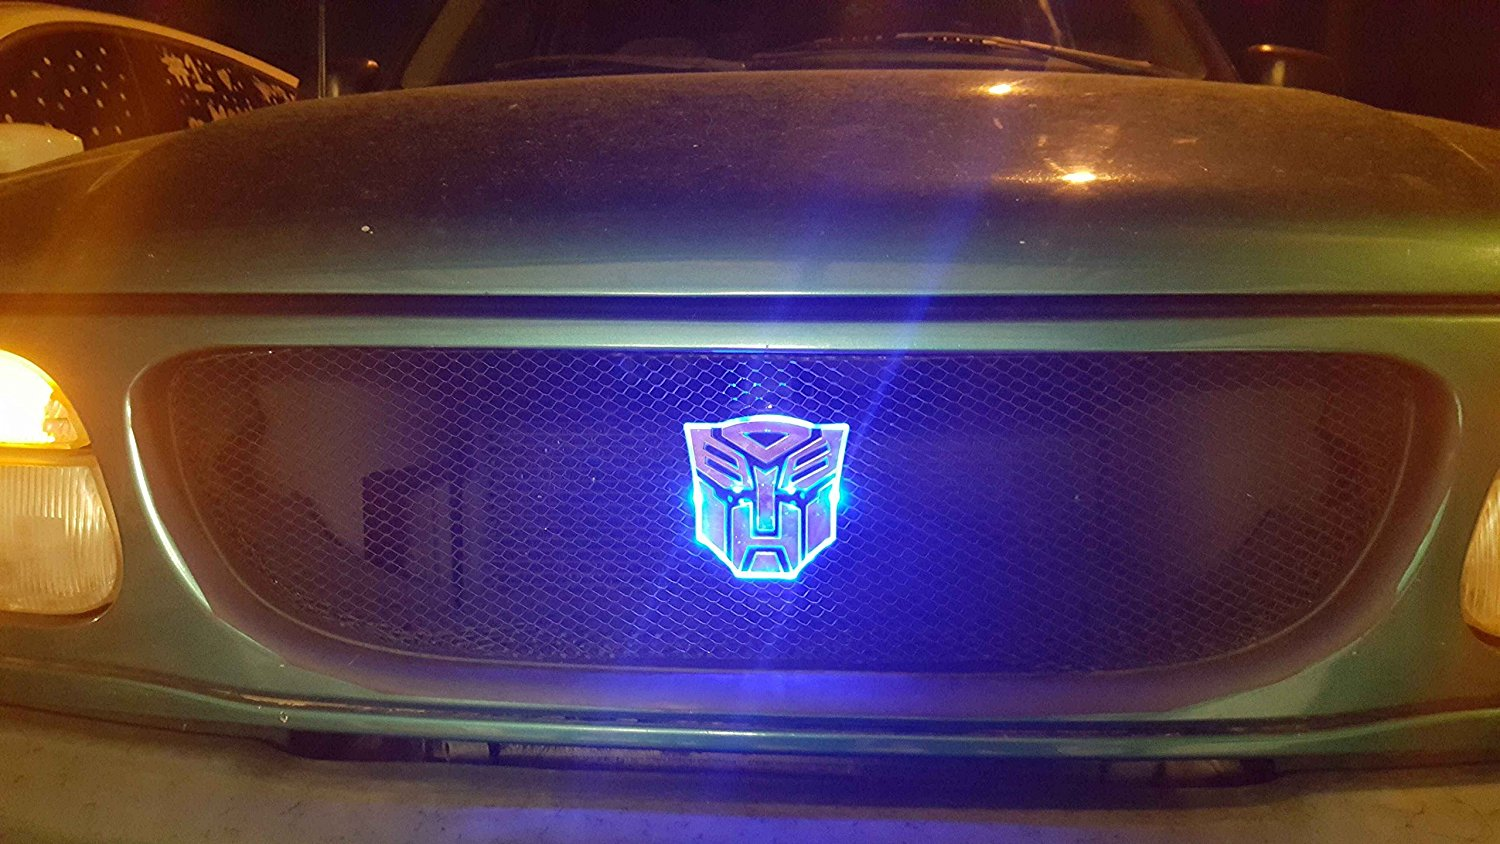 Edge Glowing Led Transformers Autobots Car Emblem Red Walmart